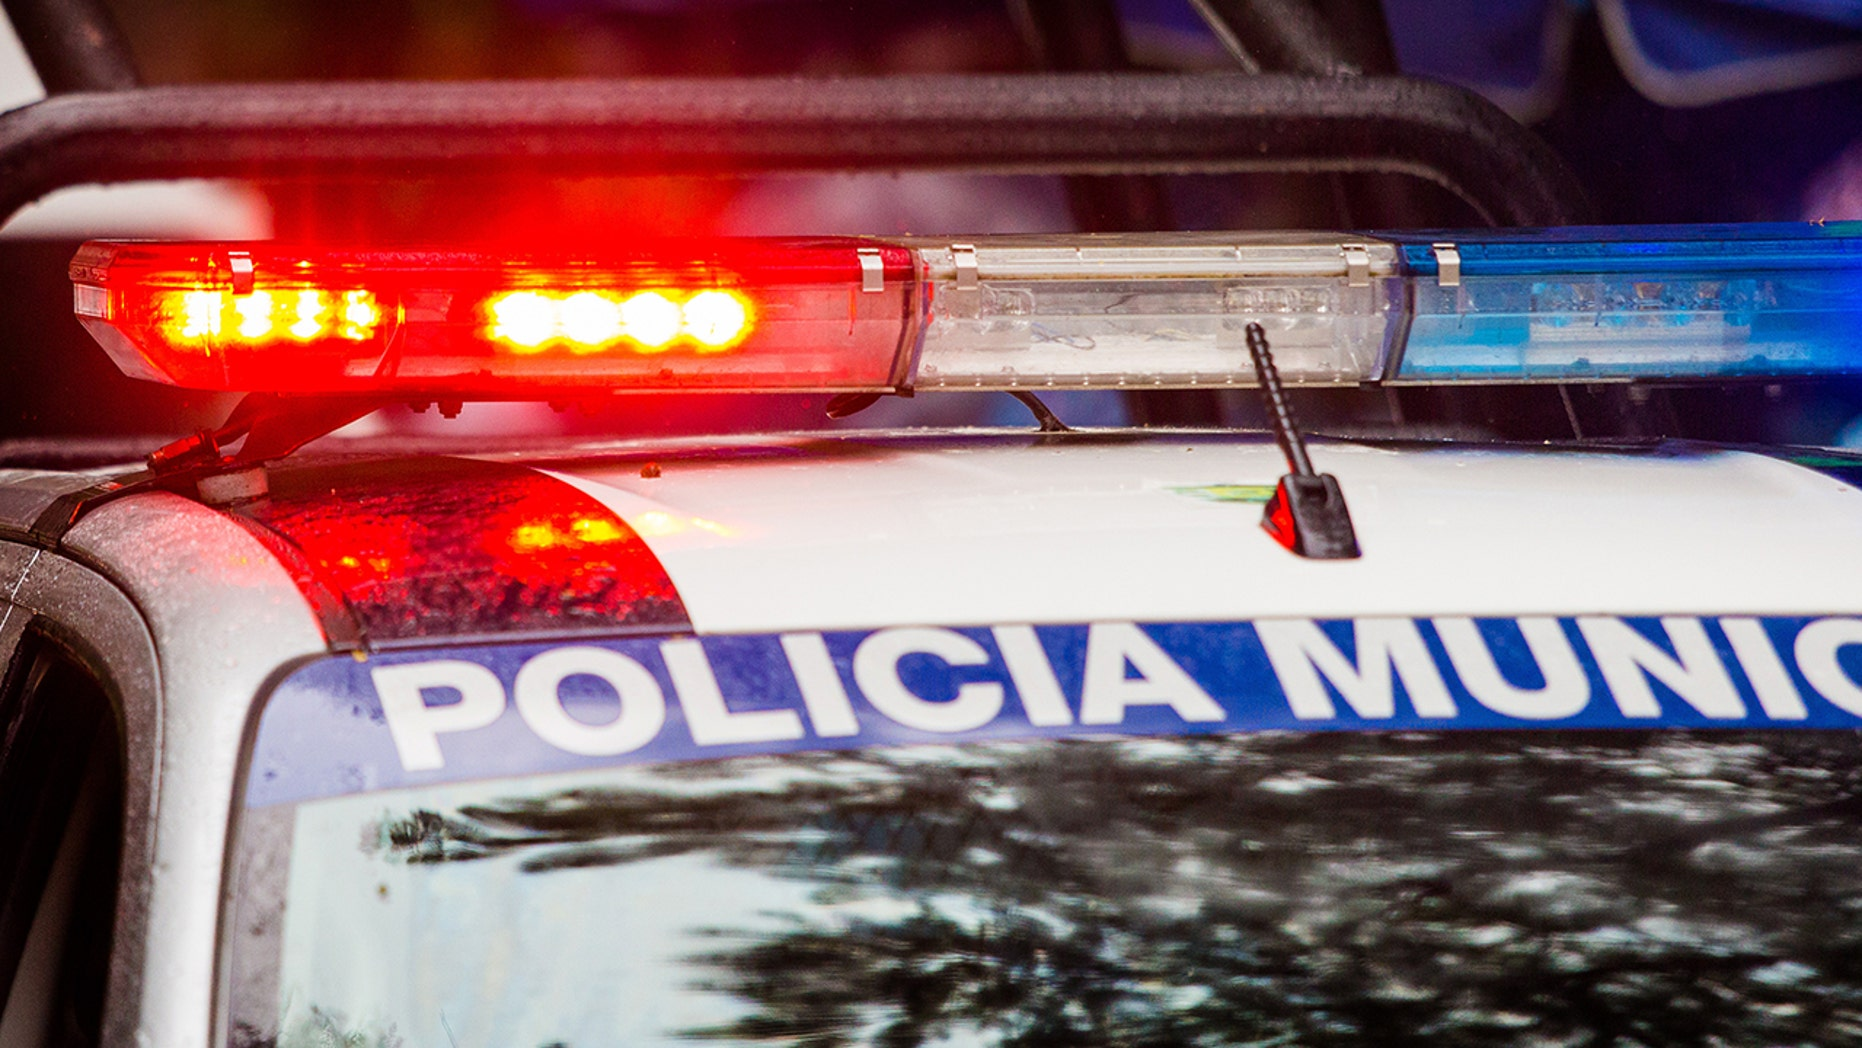 A mob in Mexico is accused of beating and lighting two men on fire who were accused of child organ trafficking on a false rumor spread of WhatsApp. (istock)